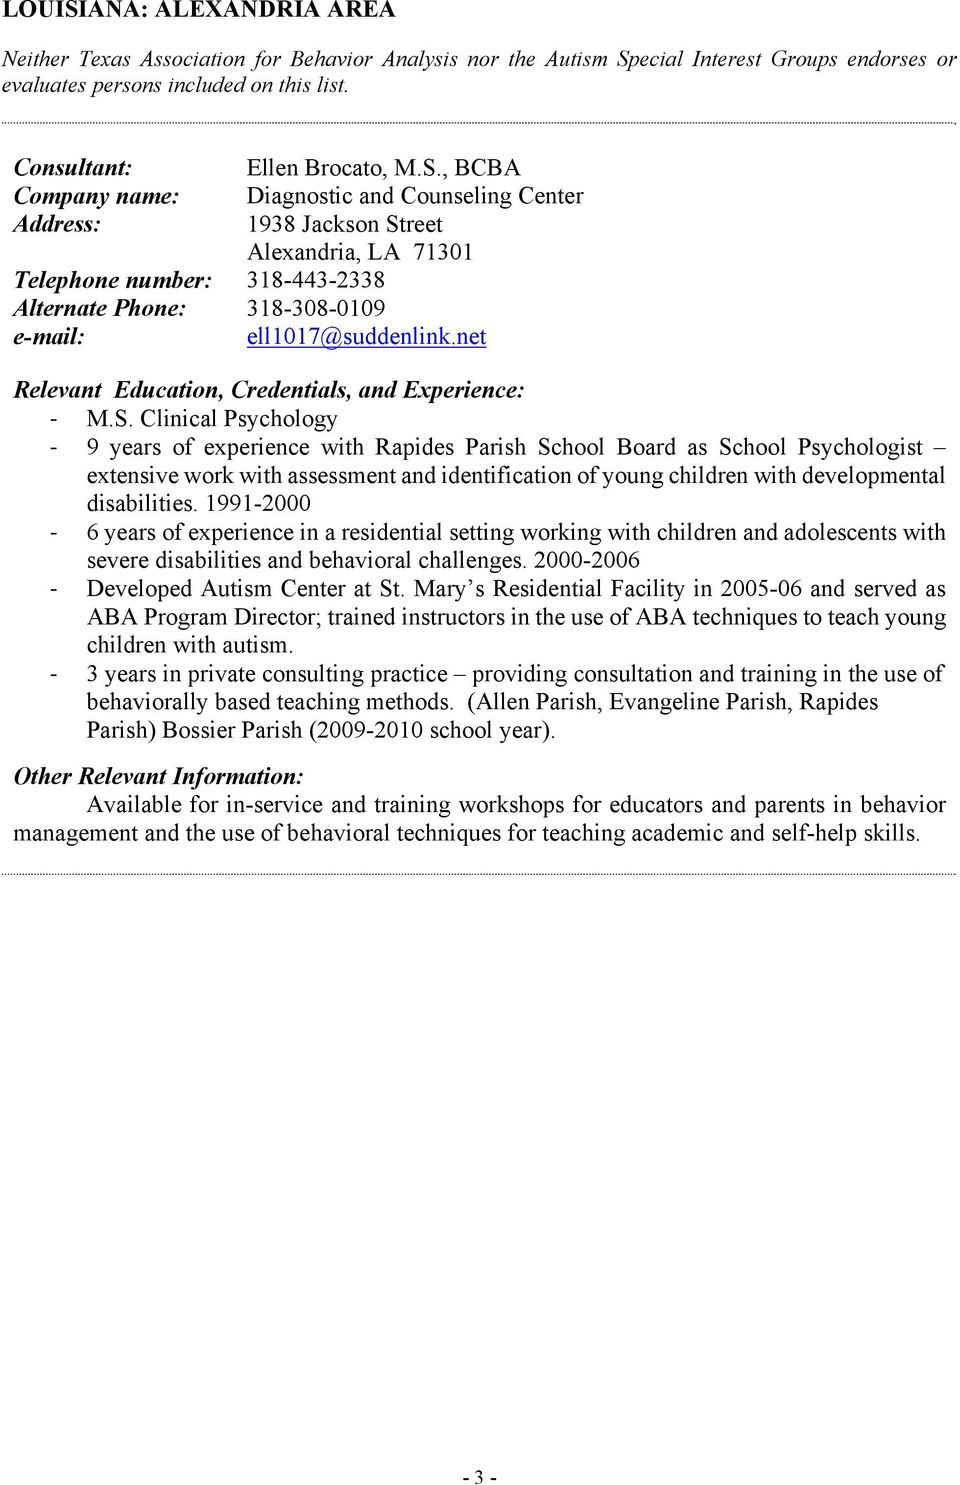 Clinical Psychology 9 years of experience with Rapides Parish School Board as School Psychologist extensive work with assessment and identification of young children with developmental disabilities.